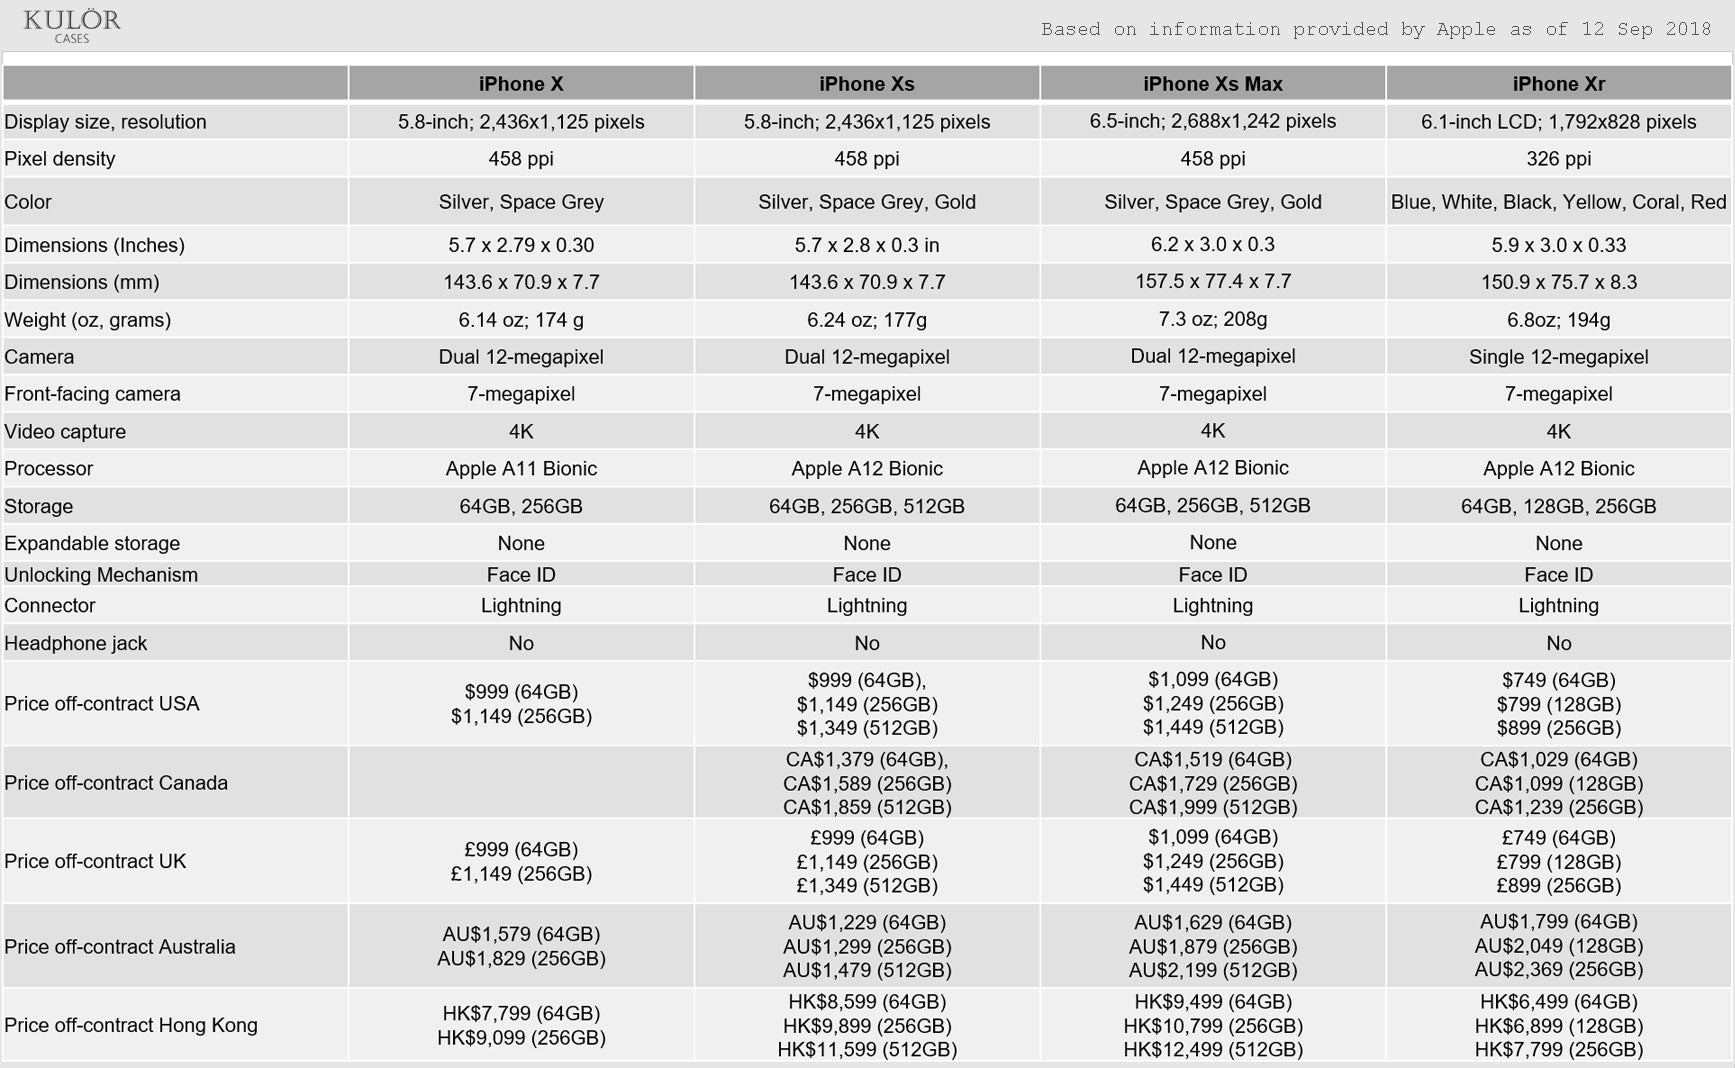 Quick summary of specs and prices - iPhone Xs, iPhone Xs Max